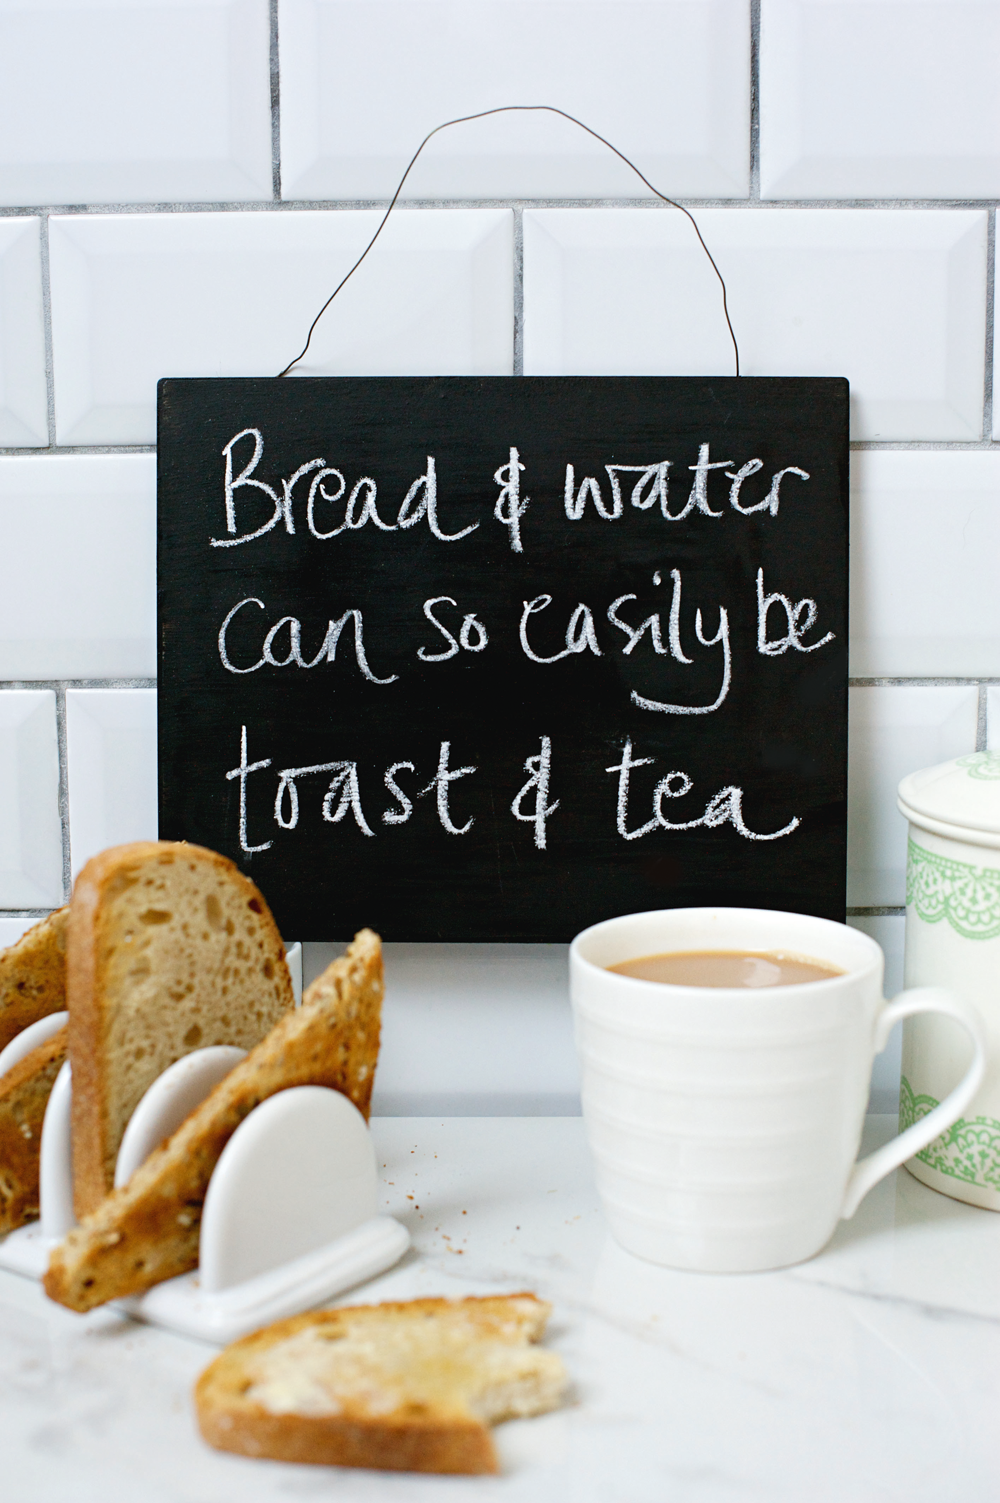 bread-and-water-can-so-easily-be-toast-and-tea.png